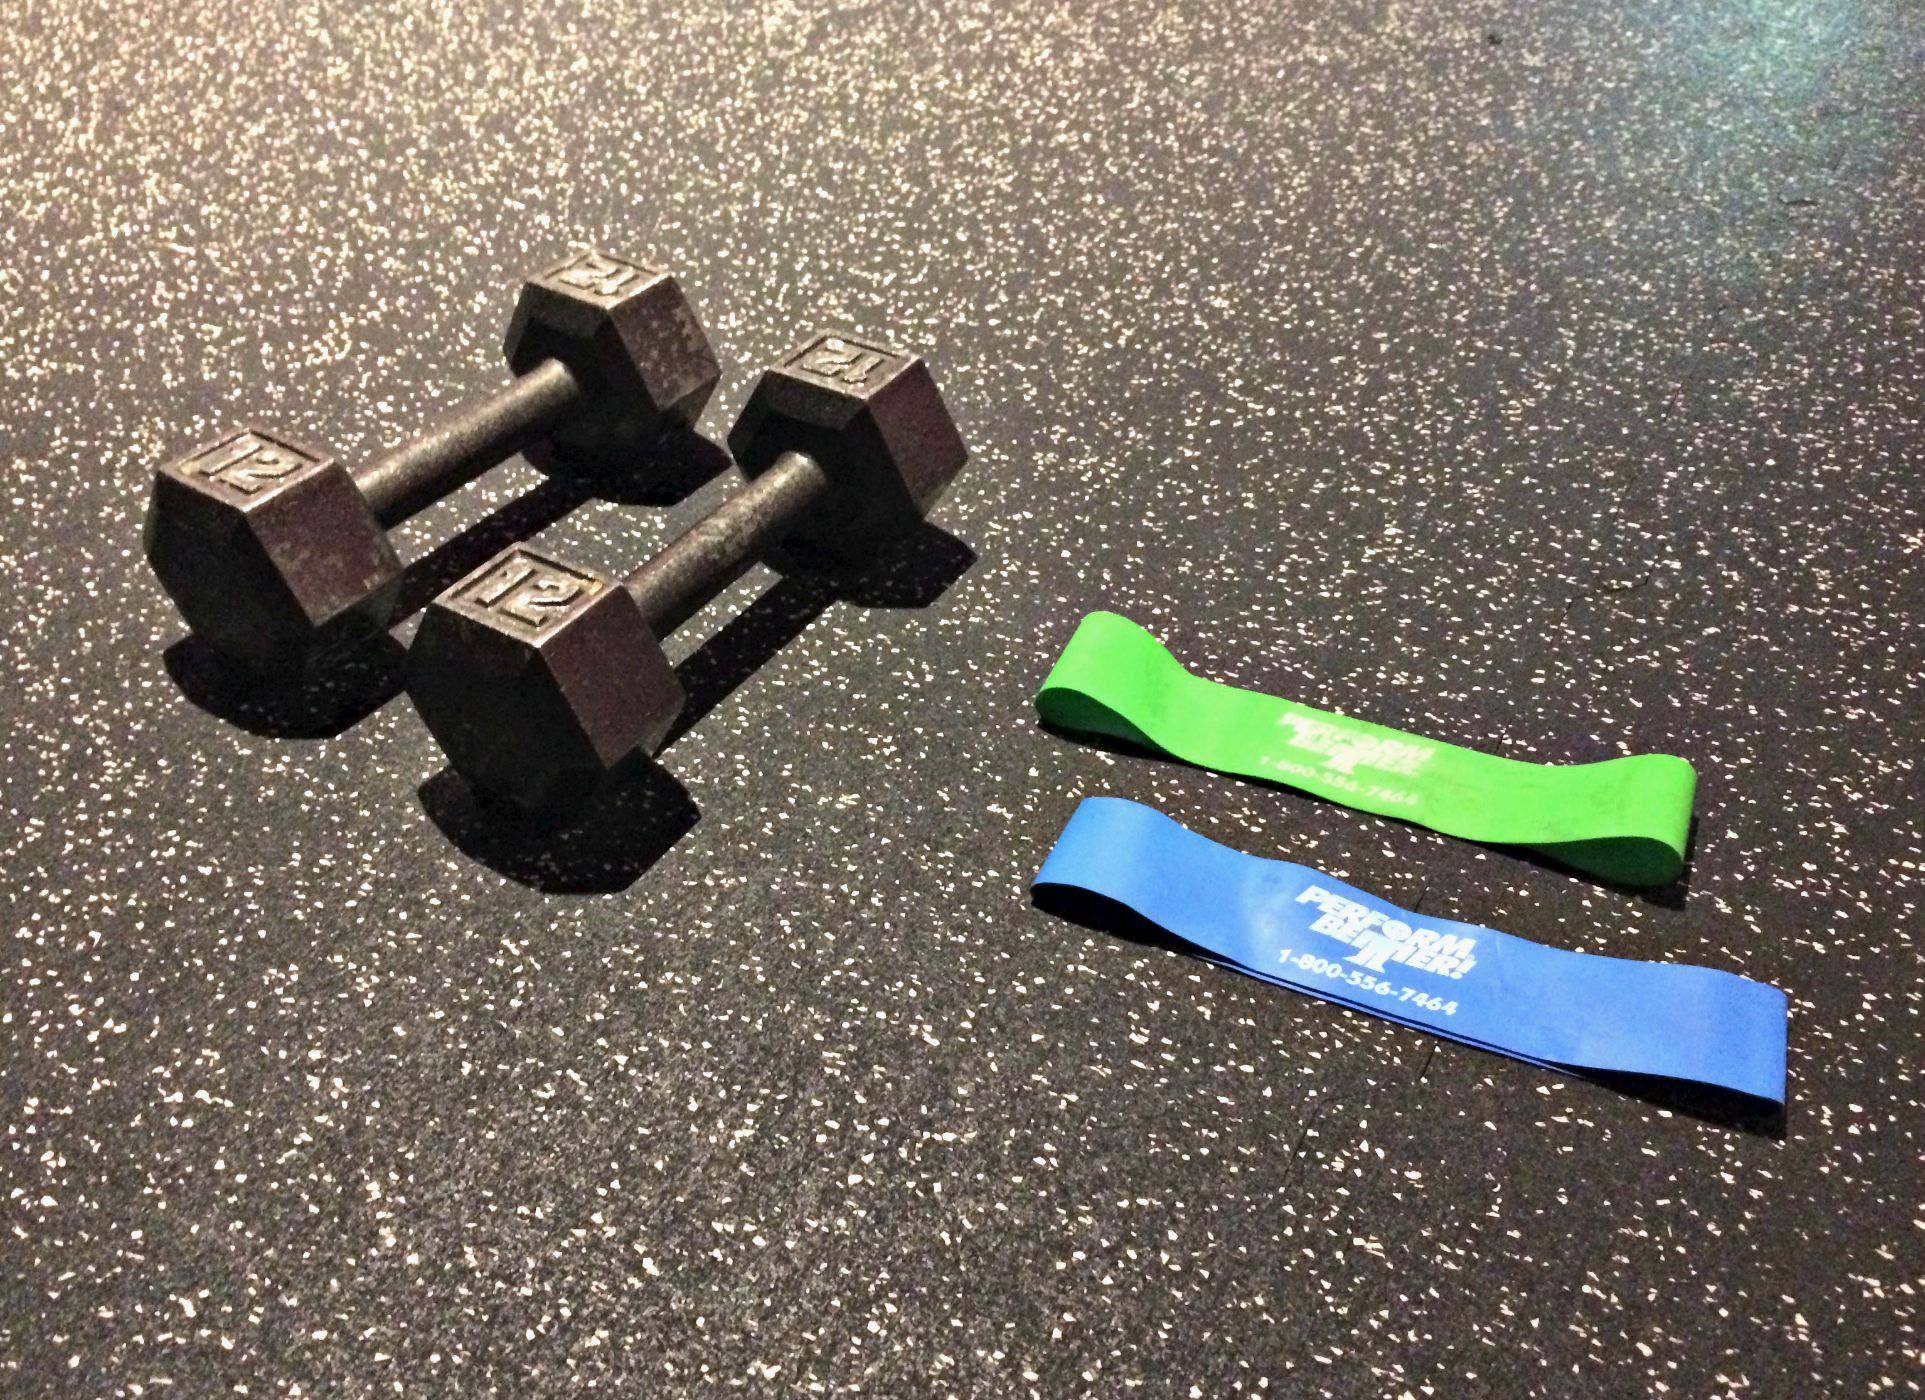 dumbbells and band exercises